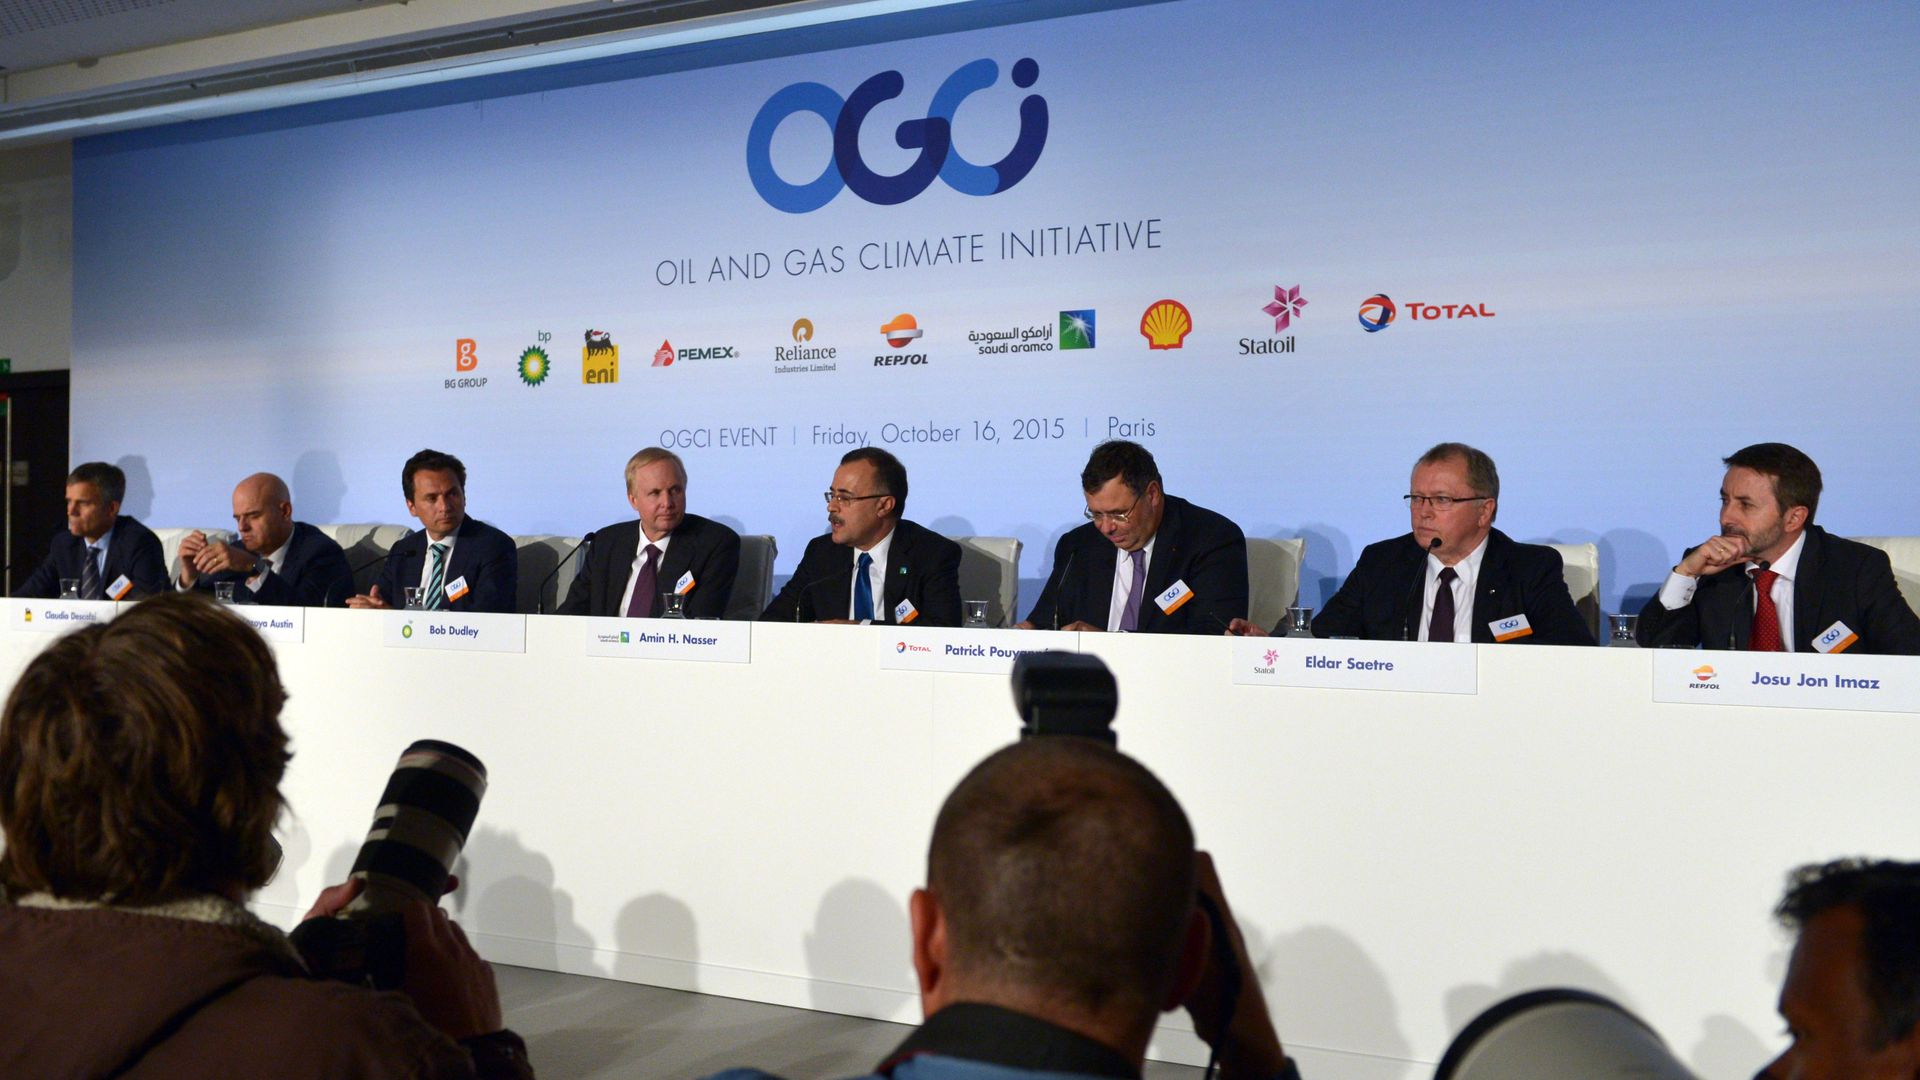 Executives at OGCI panel